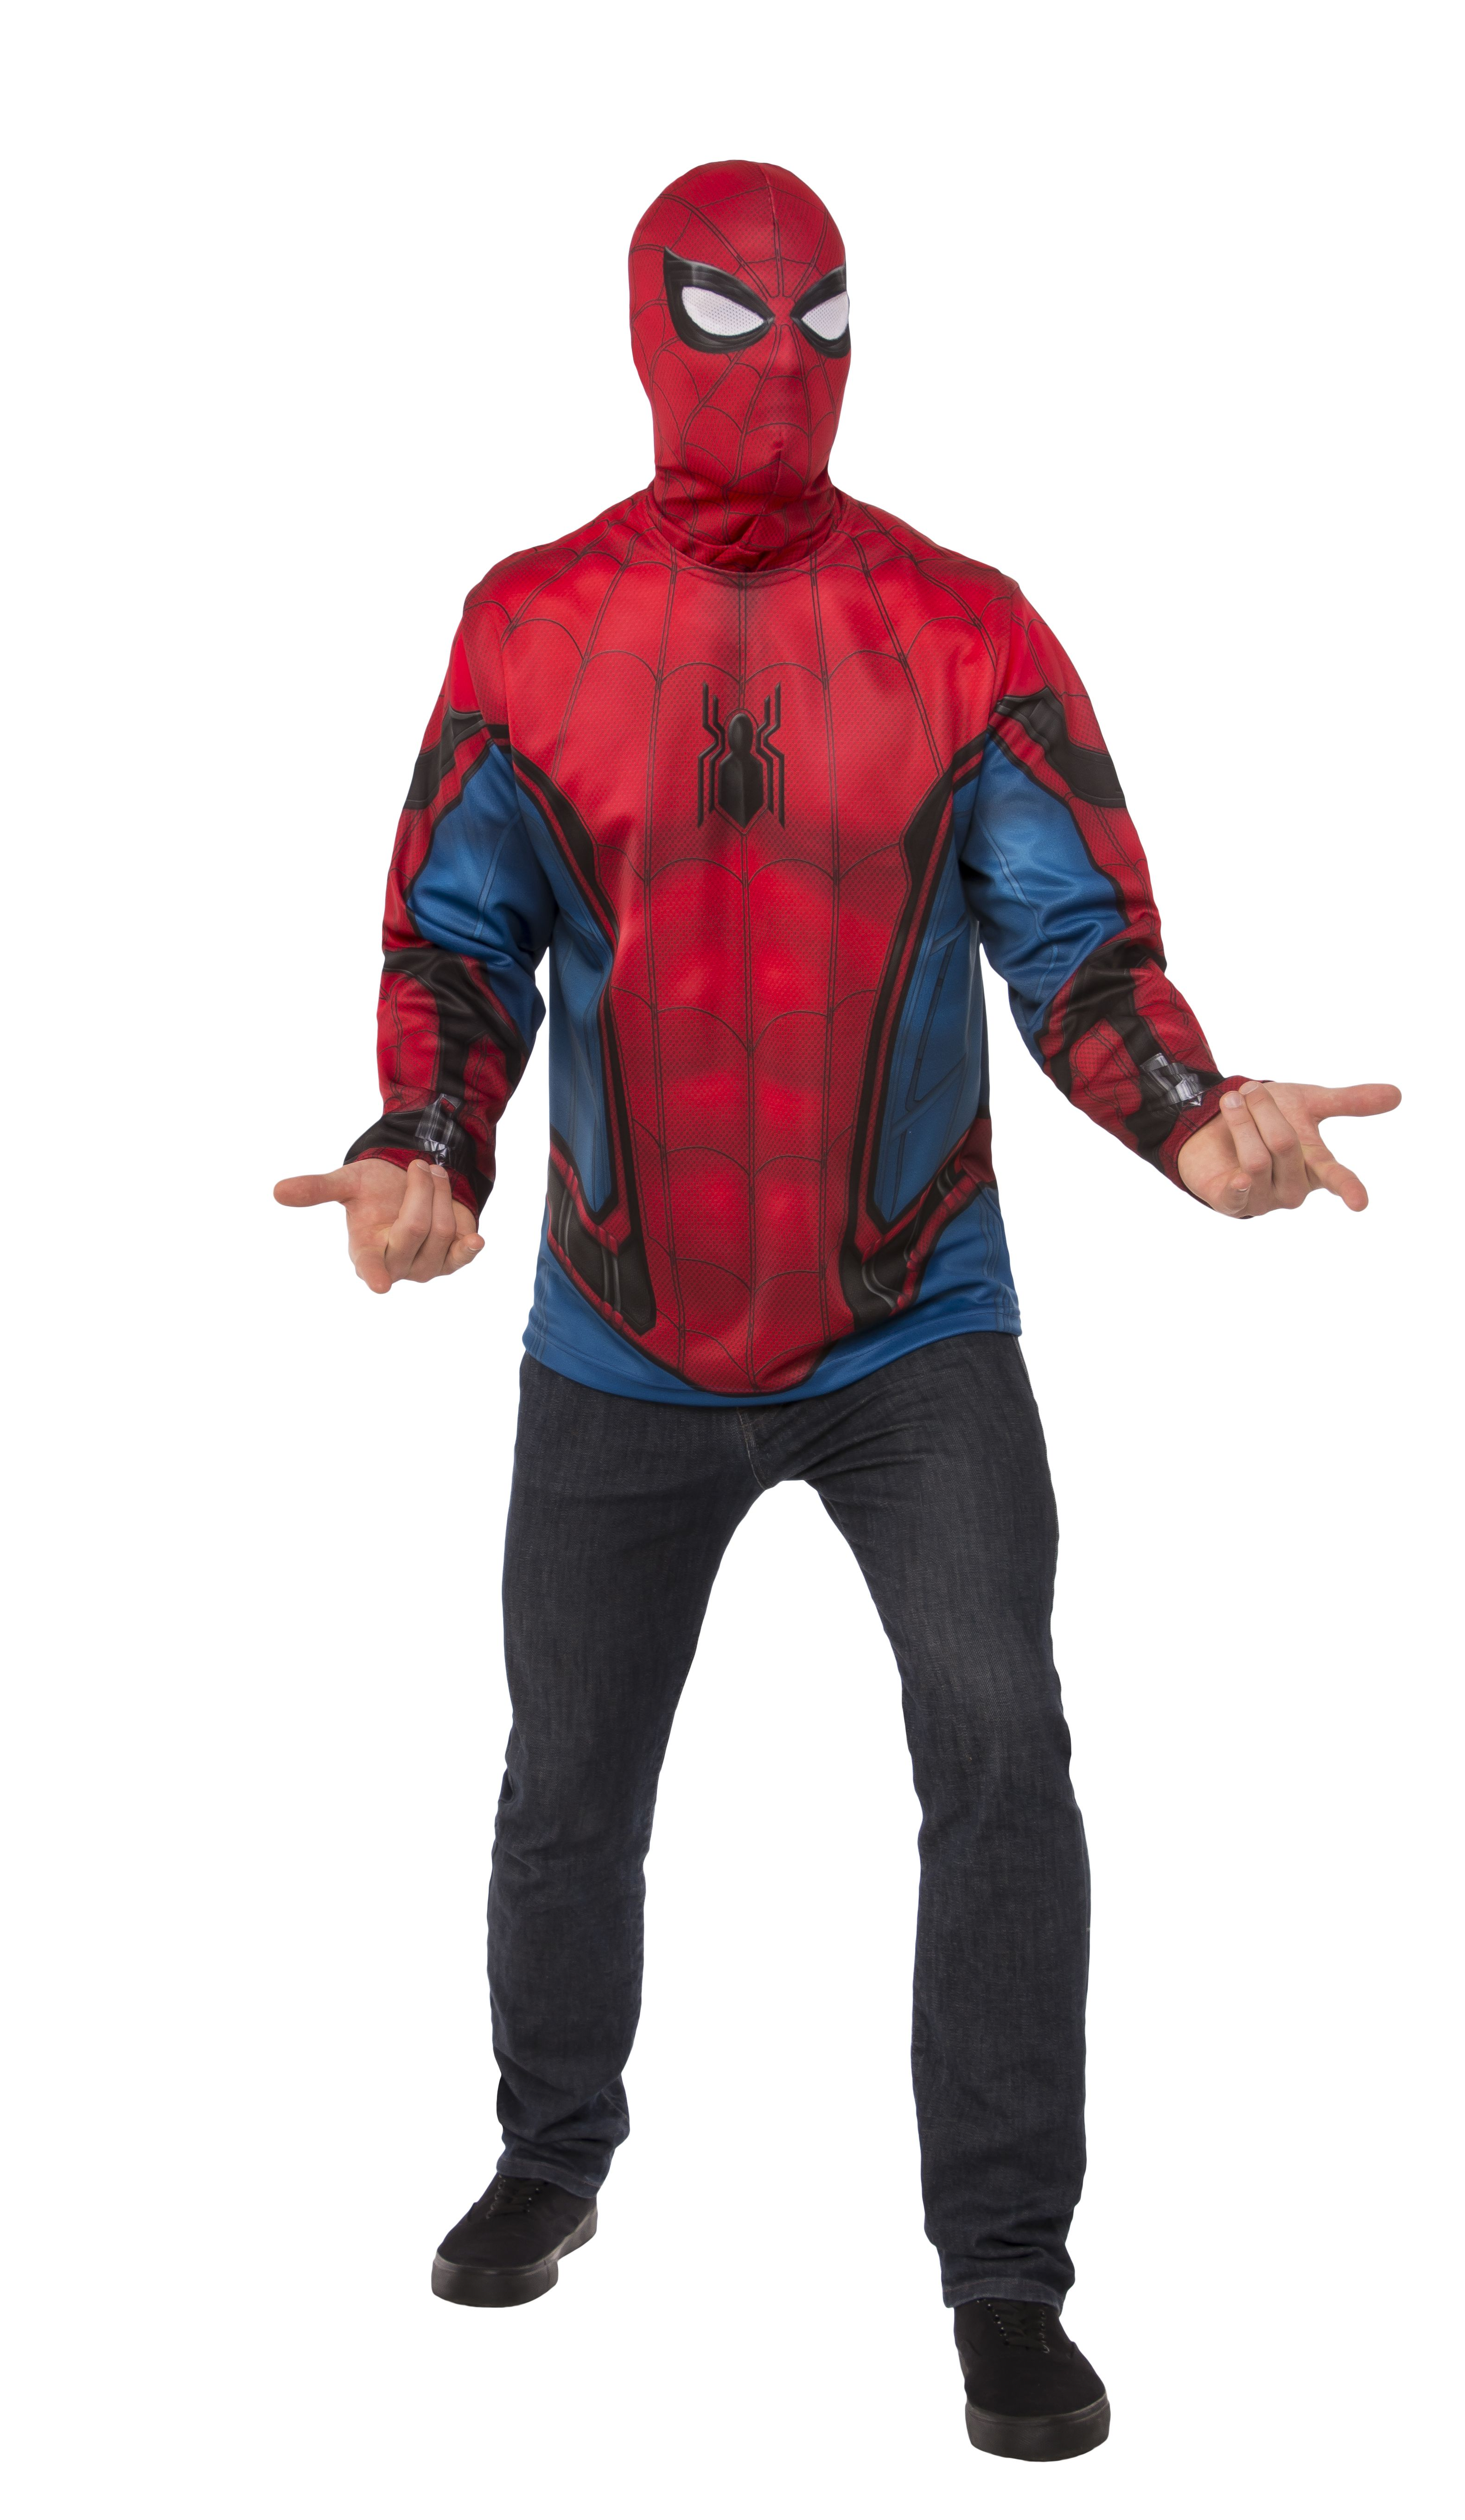 Spider-man shirt and mask for Men, new for 2017 | Your Guide for ...